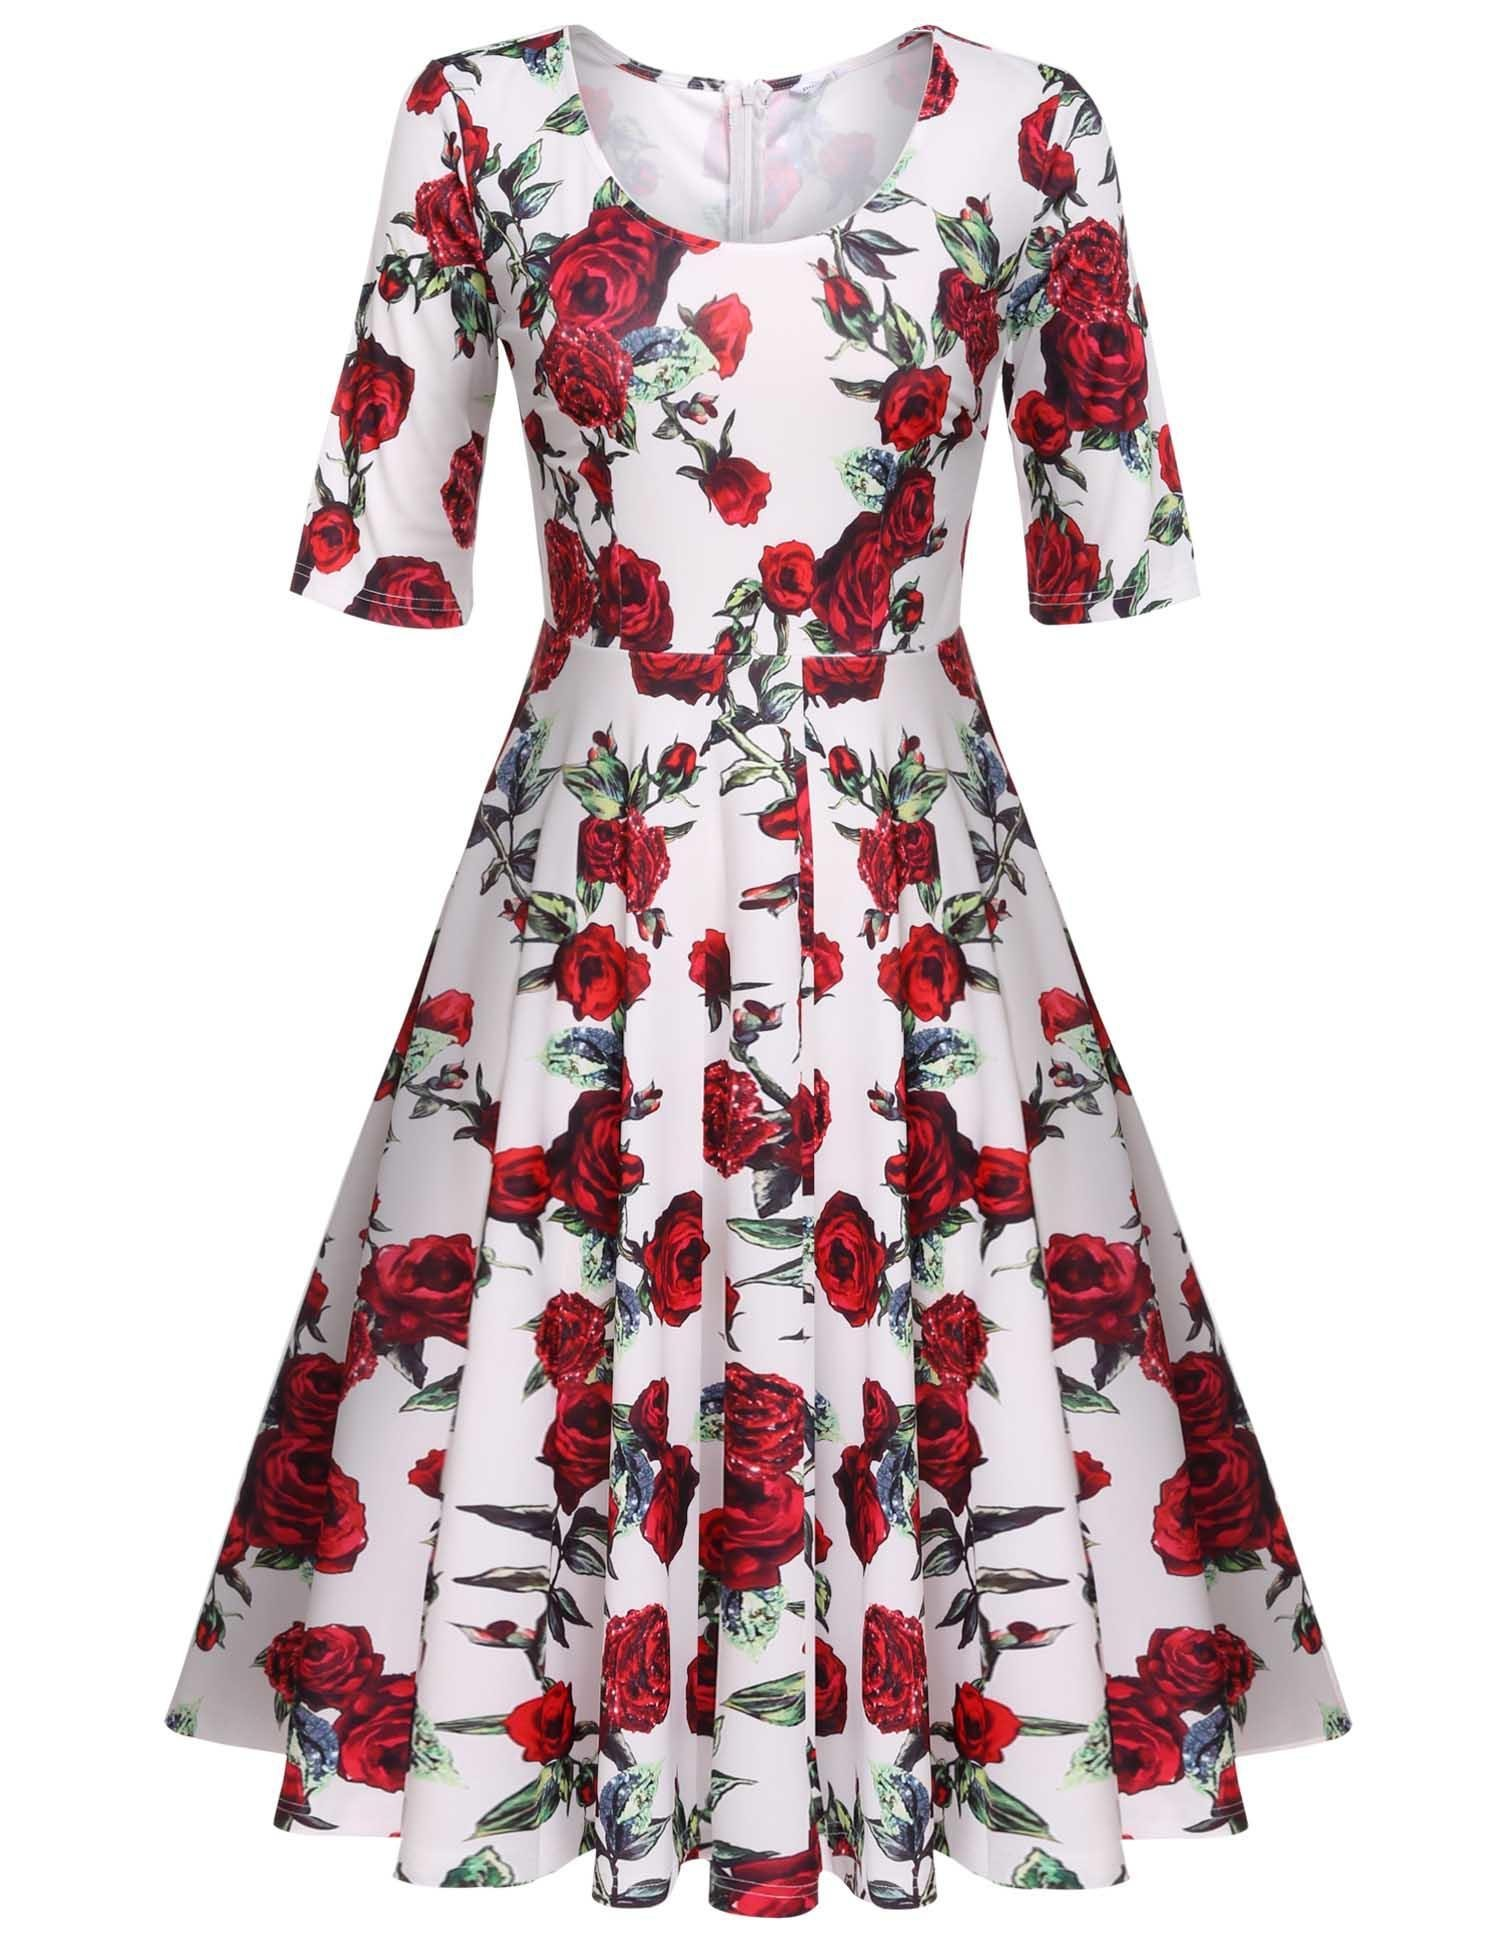 ELESOL Women's Vintage 1950s Style Half Sleeve Floral A-line Dress,Red/XXL